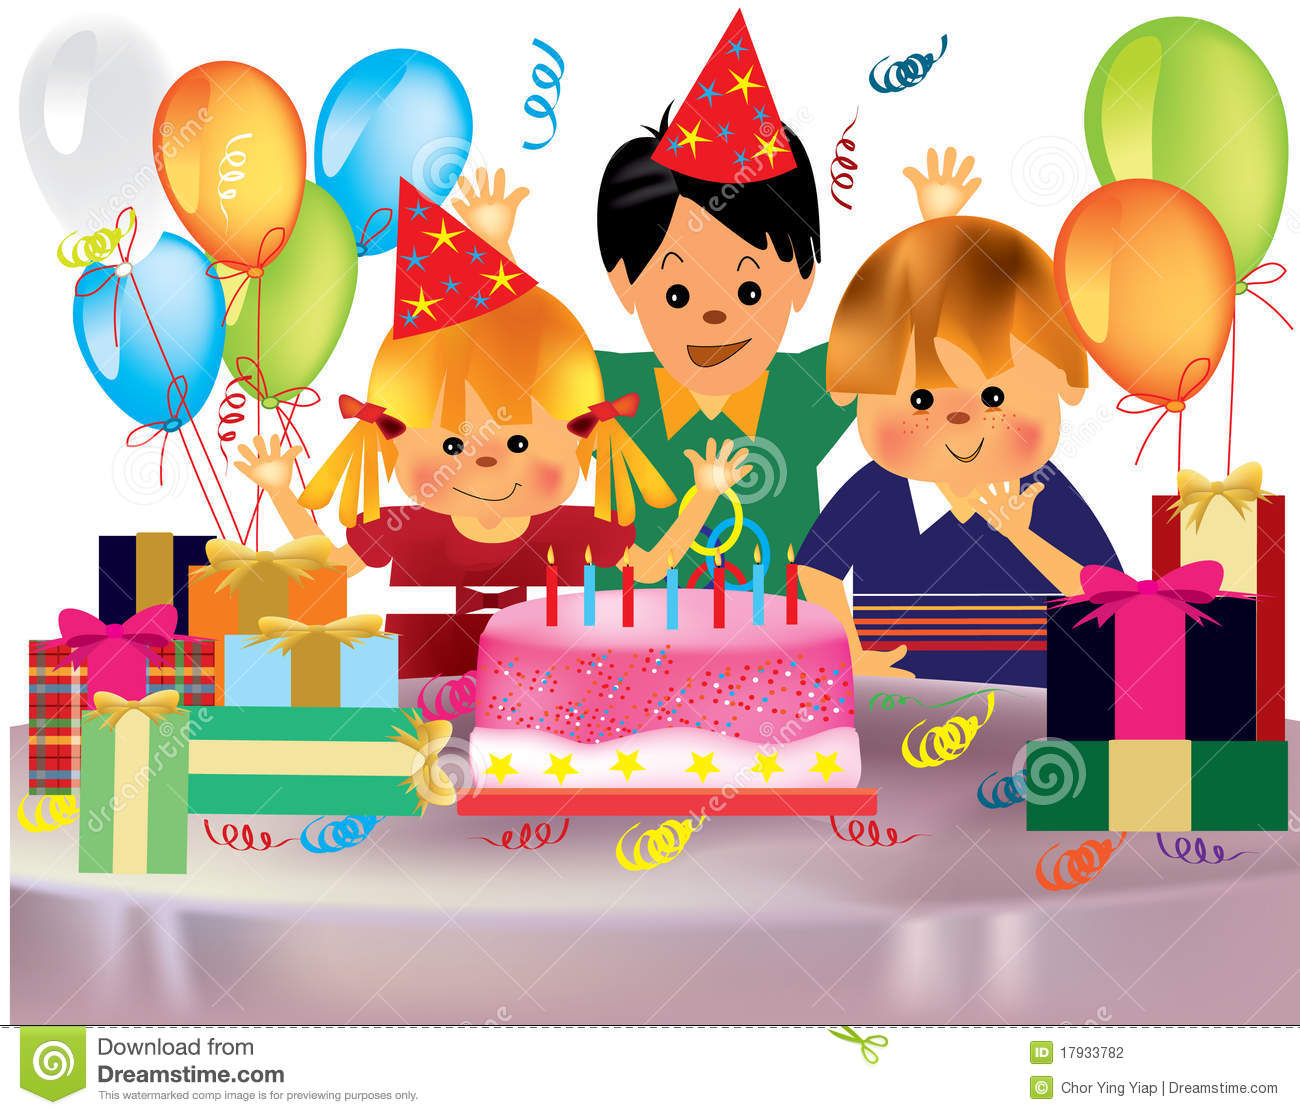 Birthday Party Clip Art Images - Clipart-Birthday party clip art images - ClipartFest-10